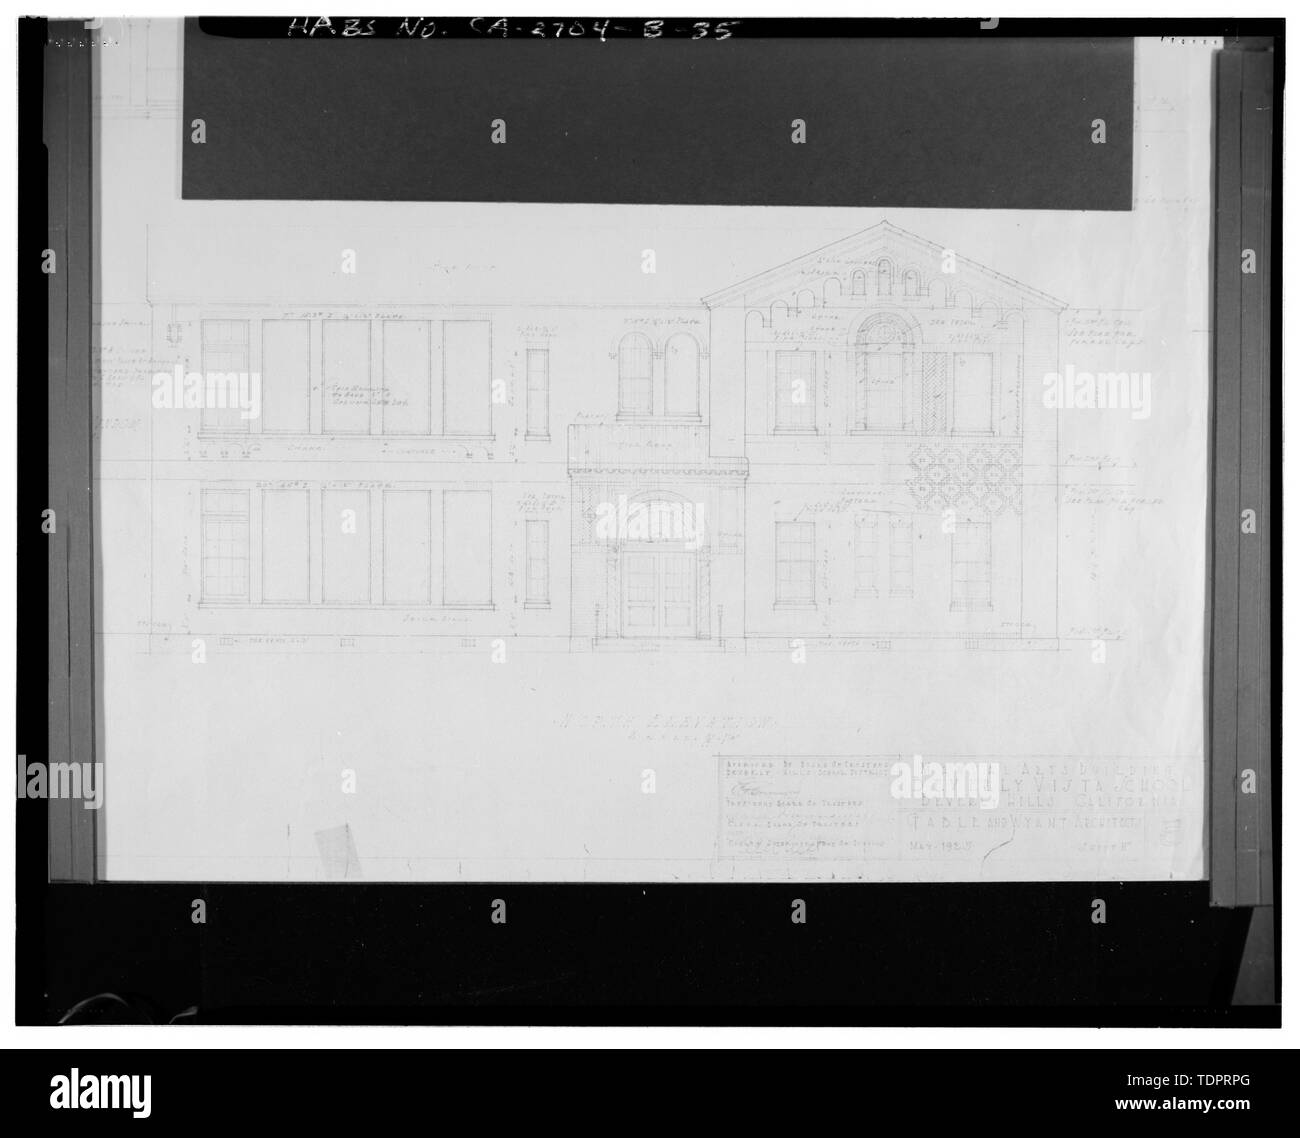 Photographic copy of reproduced original construction drawing. NORTH ELEVATION - Beverly Vista School, Manual Arts and Classroom Building, 200 South Elm Drive, Beverly Hills, Los Angeles County, CA Stock Photo